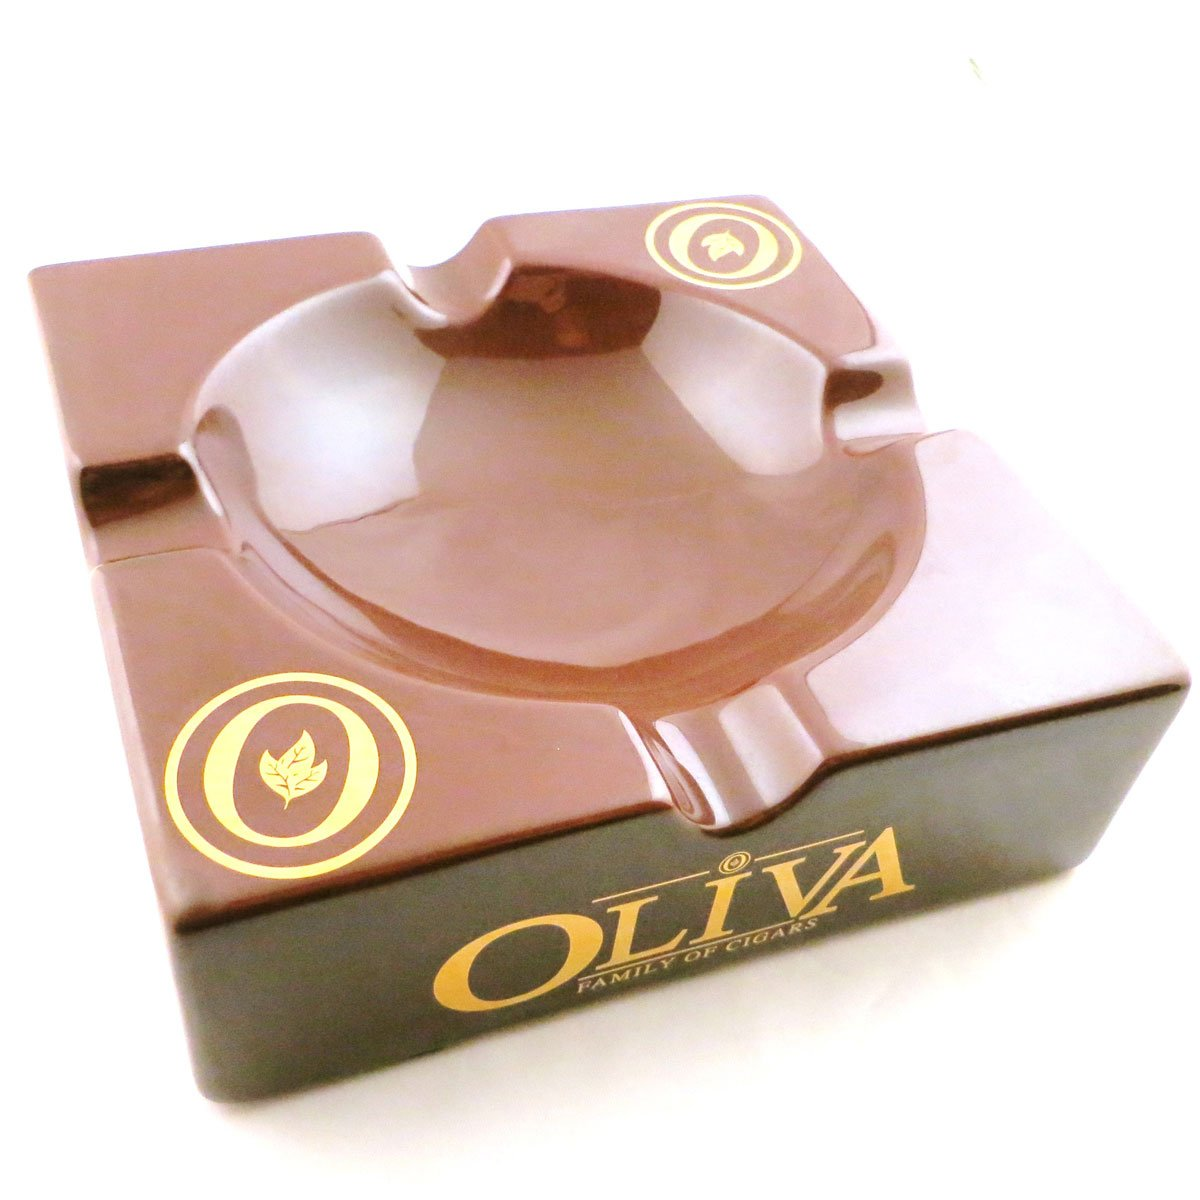 Oliva Cigar Ashtray